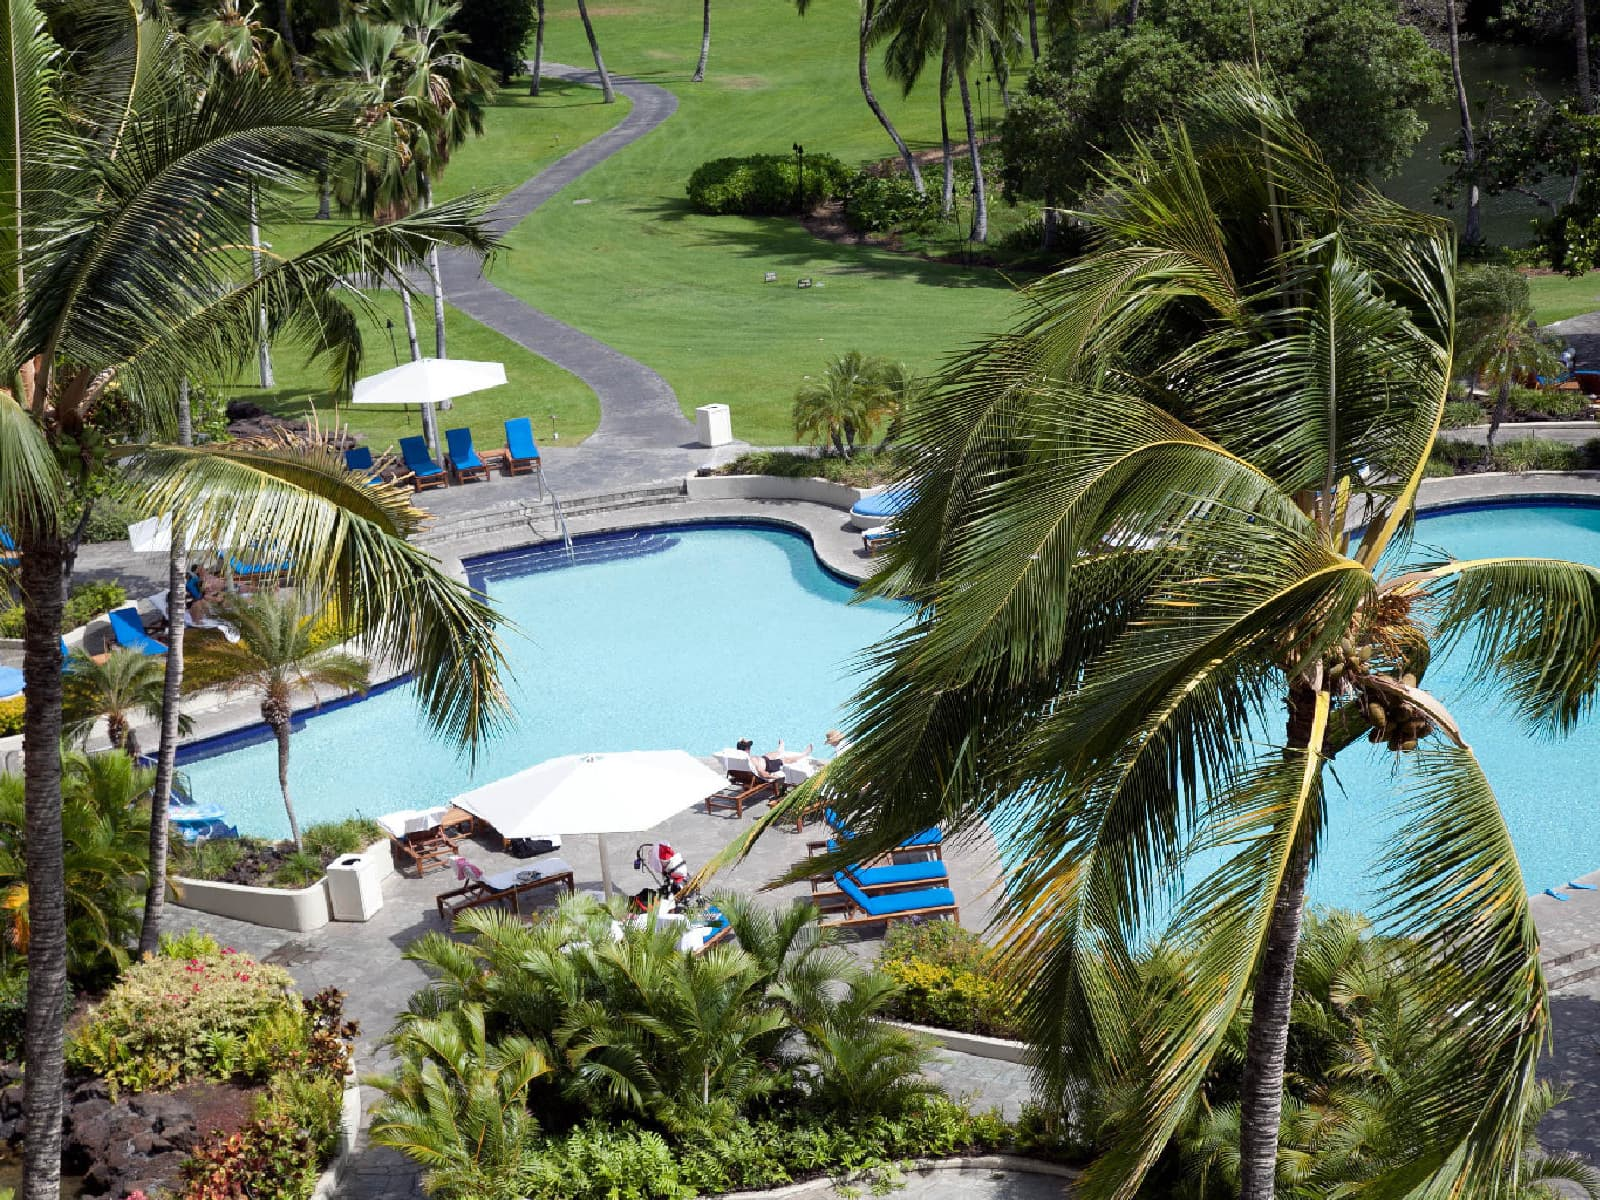 The Mauna Lani Bay Hotel & Bungalows - one of the best tennis resorts for your tennis holidays in Hawaii